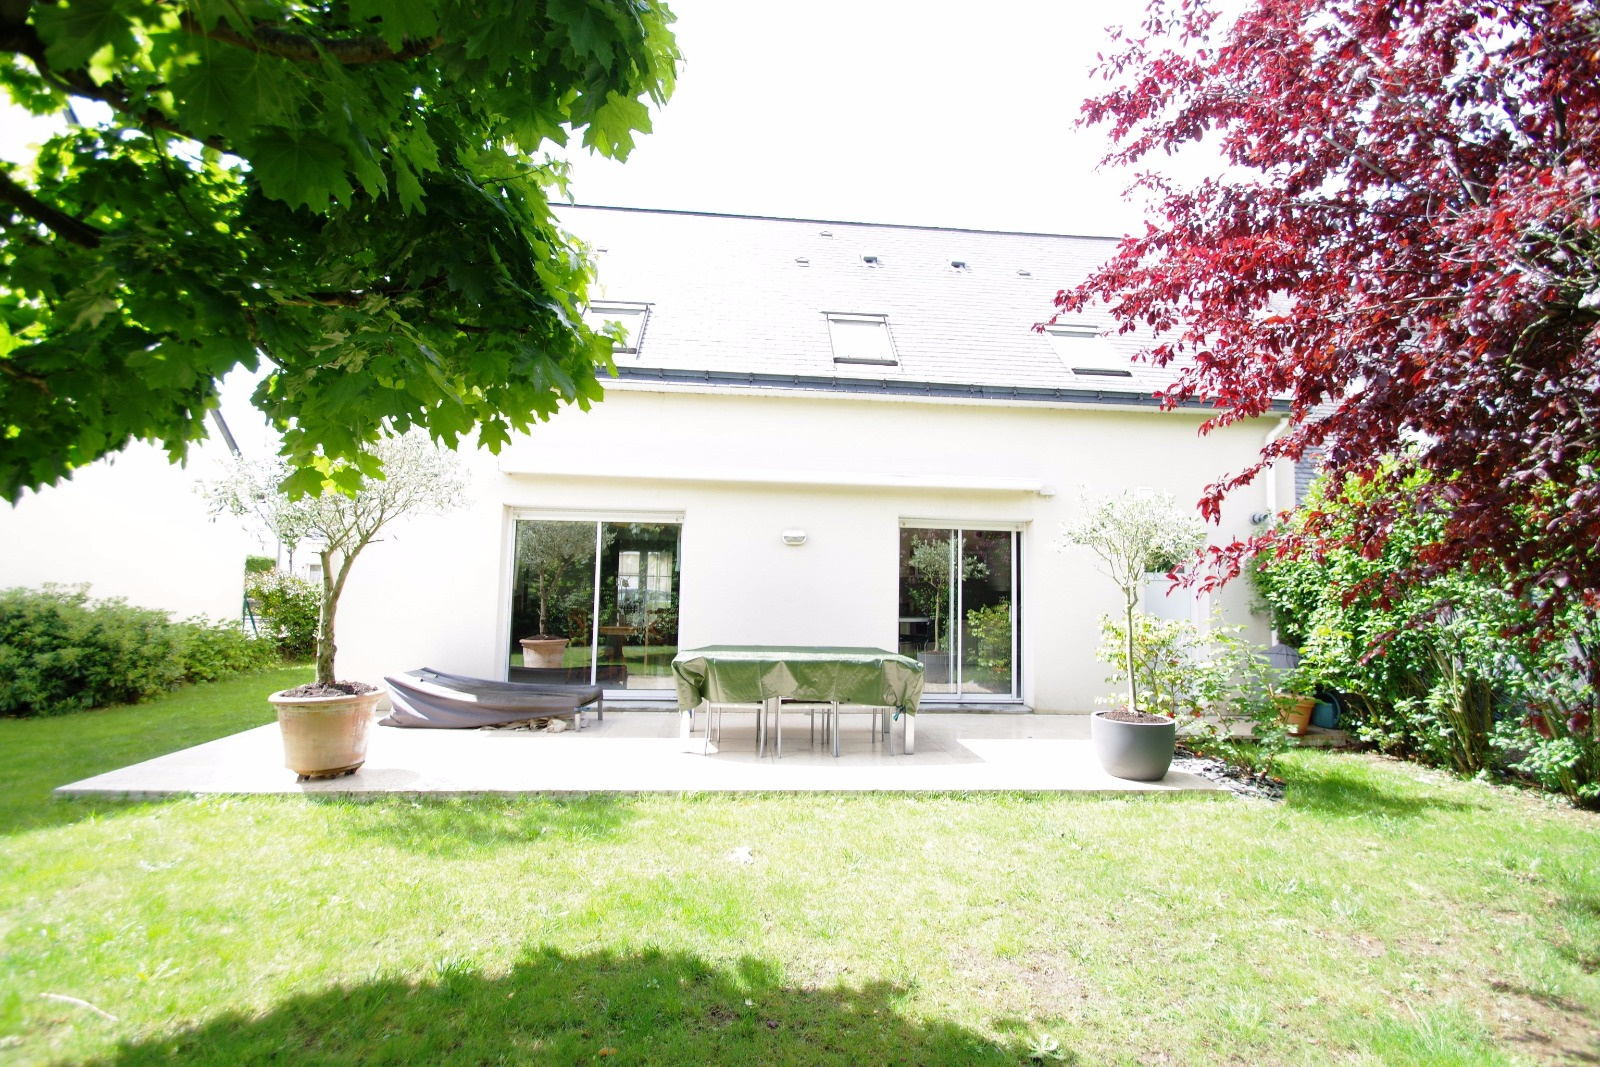 Vente maison angers 4 pi ces angers 335000 for Garage ad angers st serge